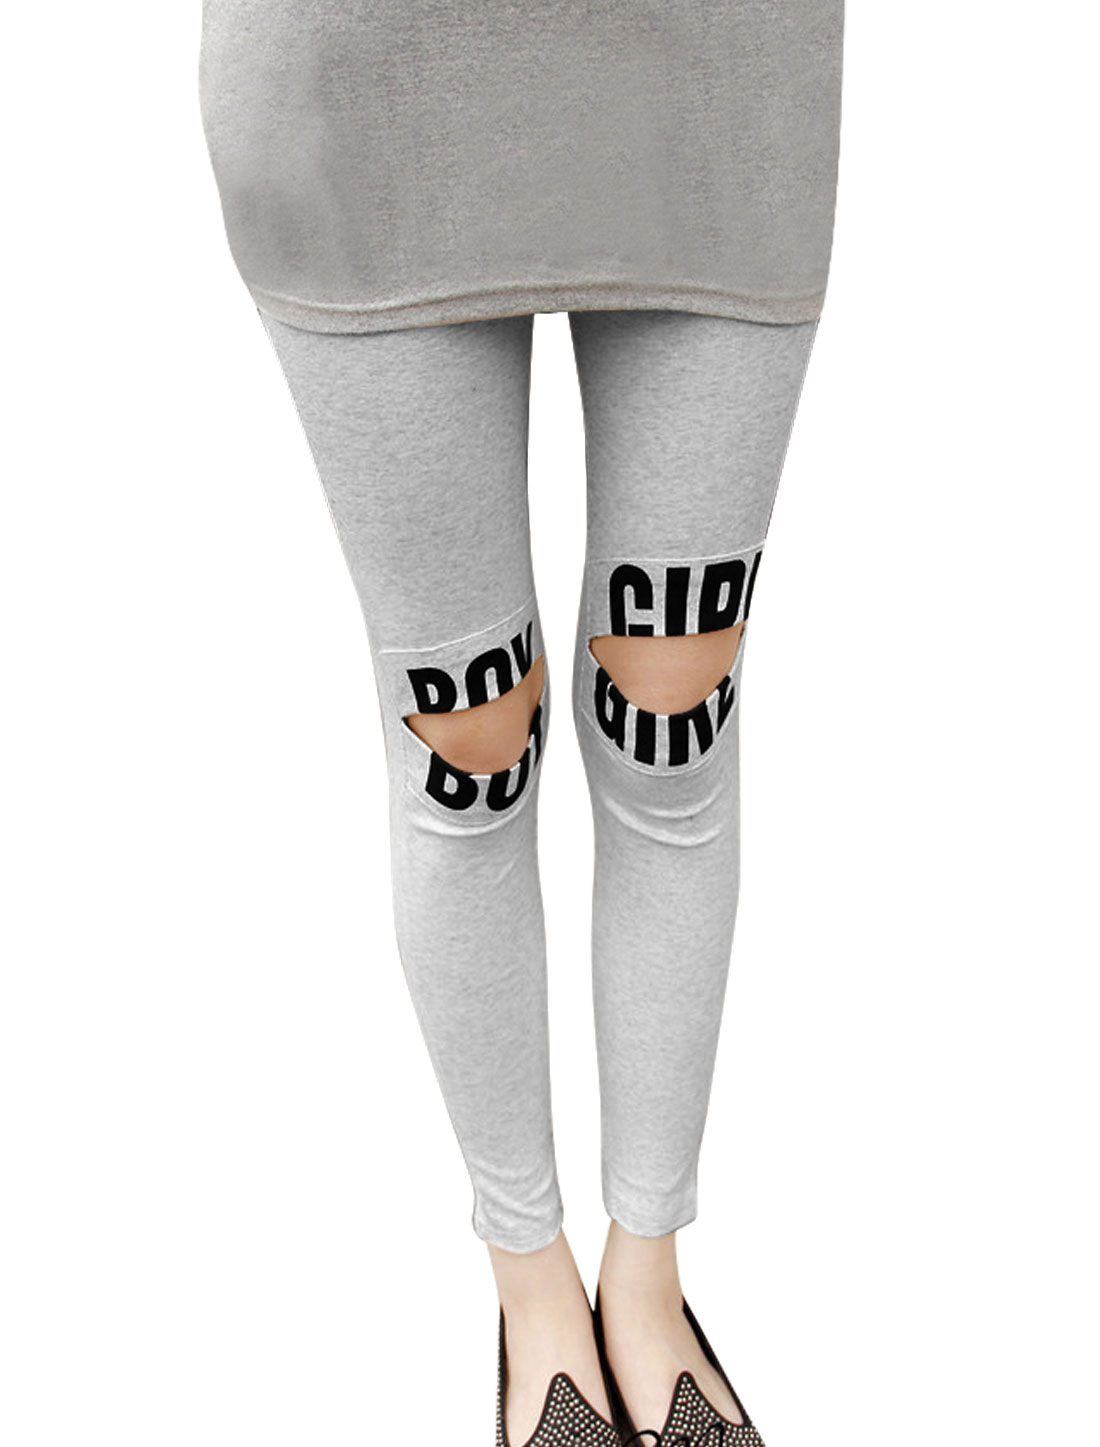 Letters Prints Strtchy Form-fitting Light Gray Leggings for Woman XS